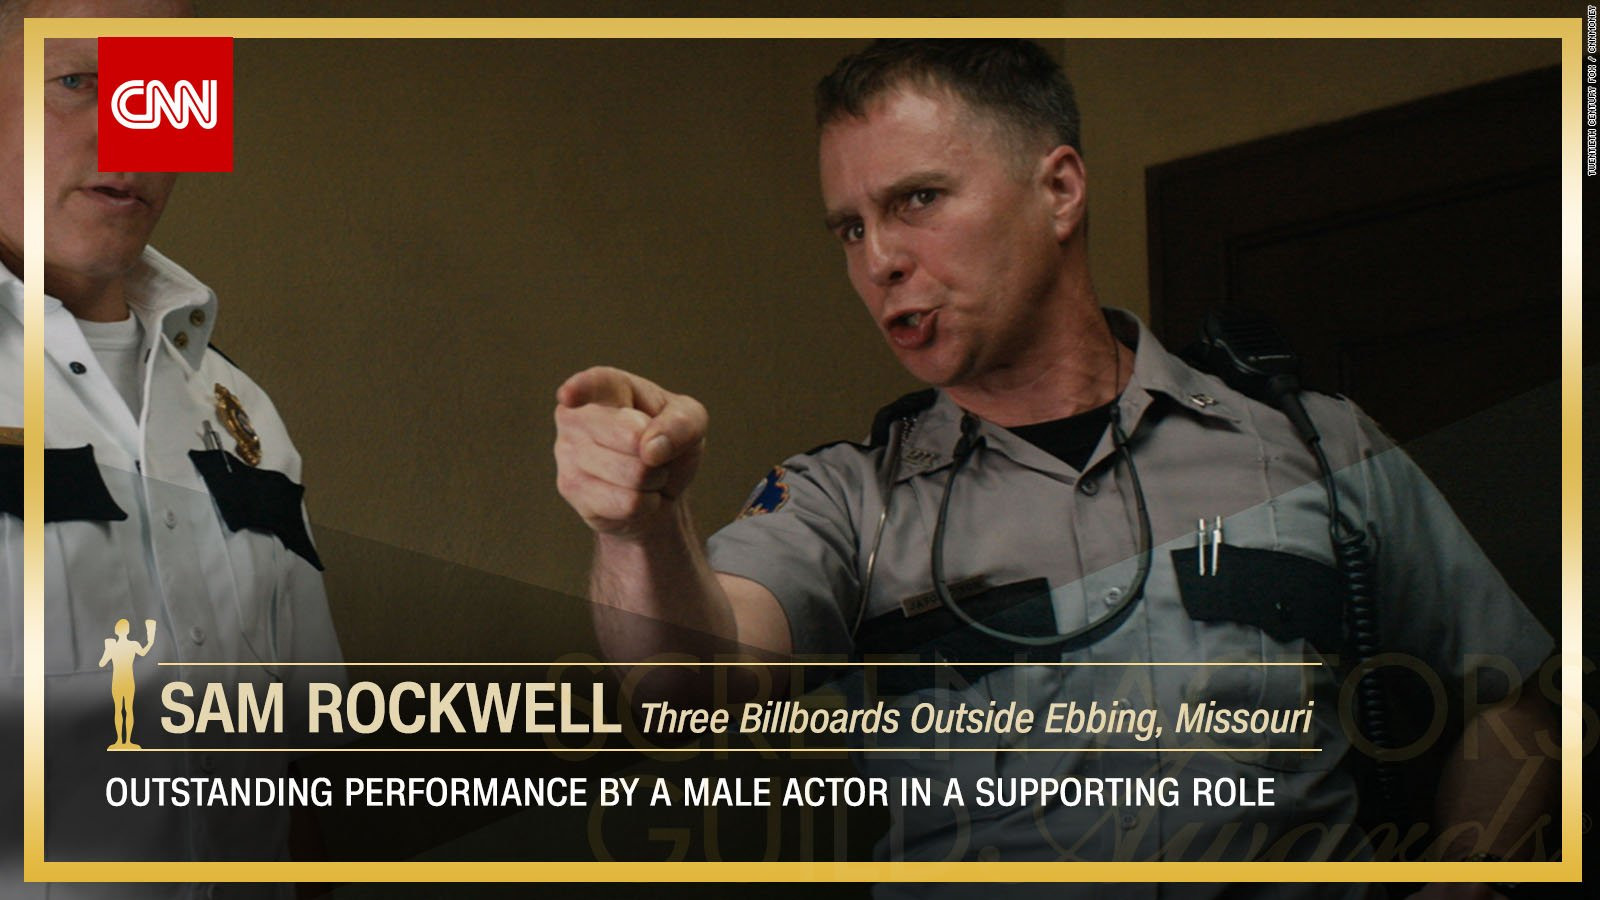 Sam Rockwell wins Outstanding Performance by a Male Actor in a Supporting Role. https://t.co/cPly9Wzl8b #SAGAwards https://t.co/yAzHv9BNrb